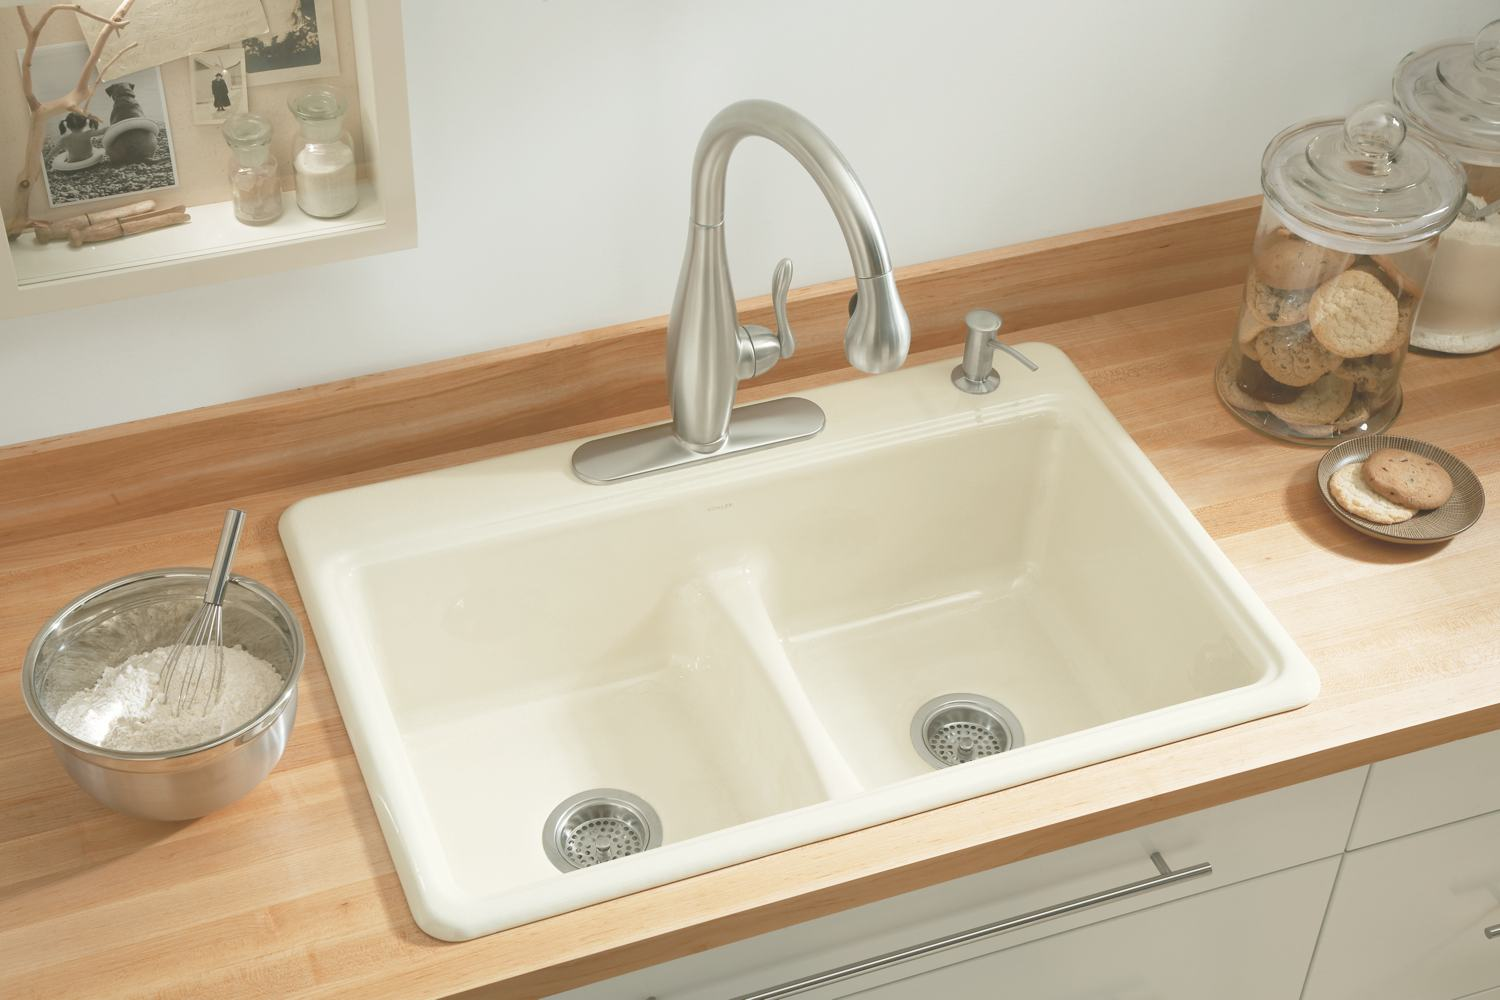 White Kohler Sinks Plus Silver Faucet With Single Handle Ideas